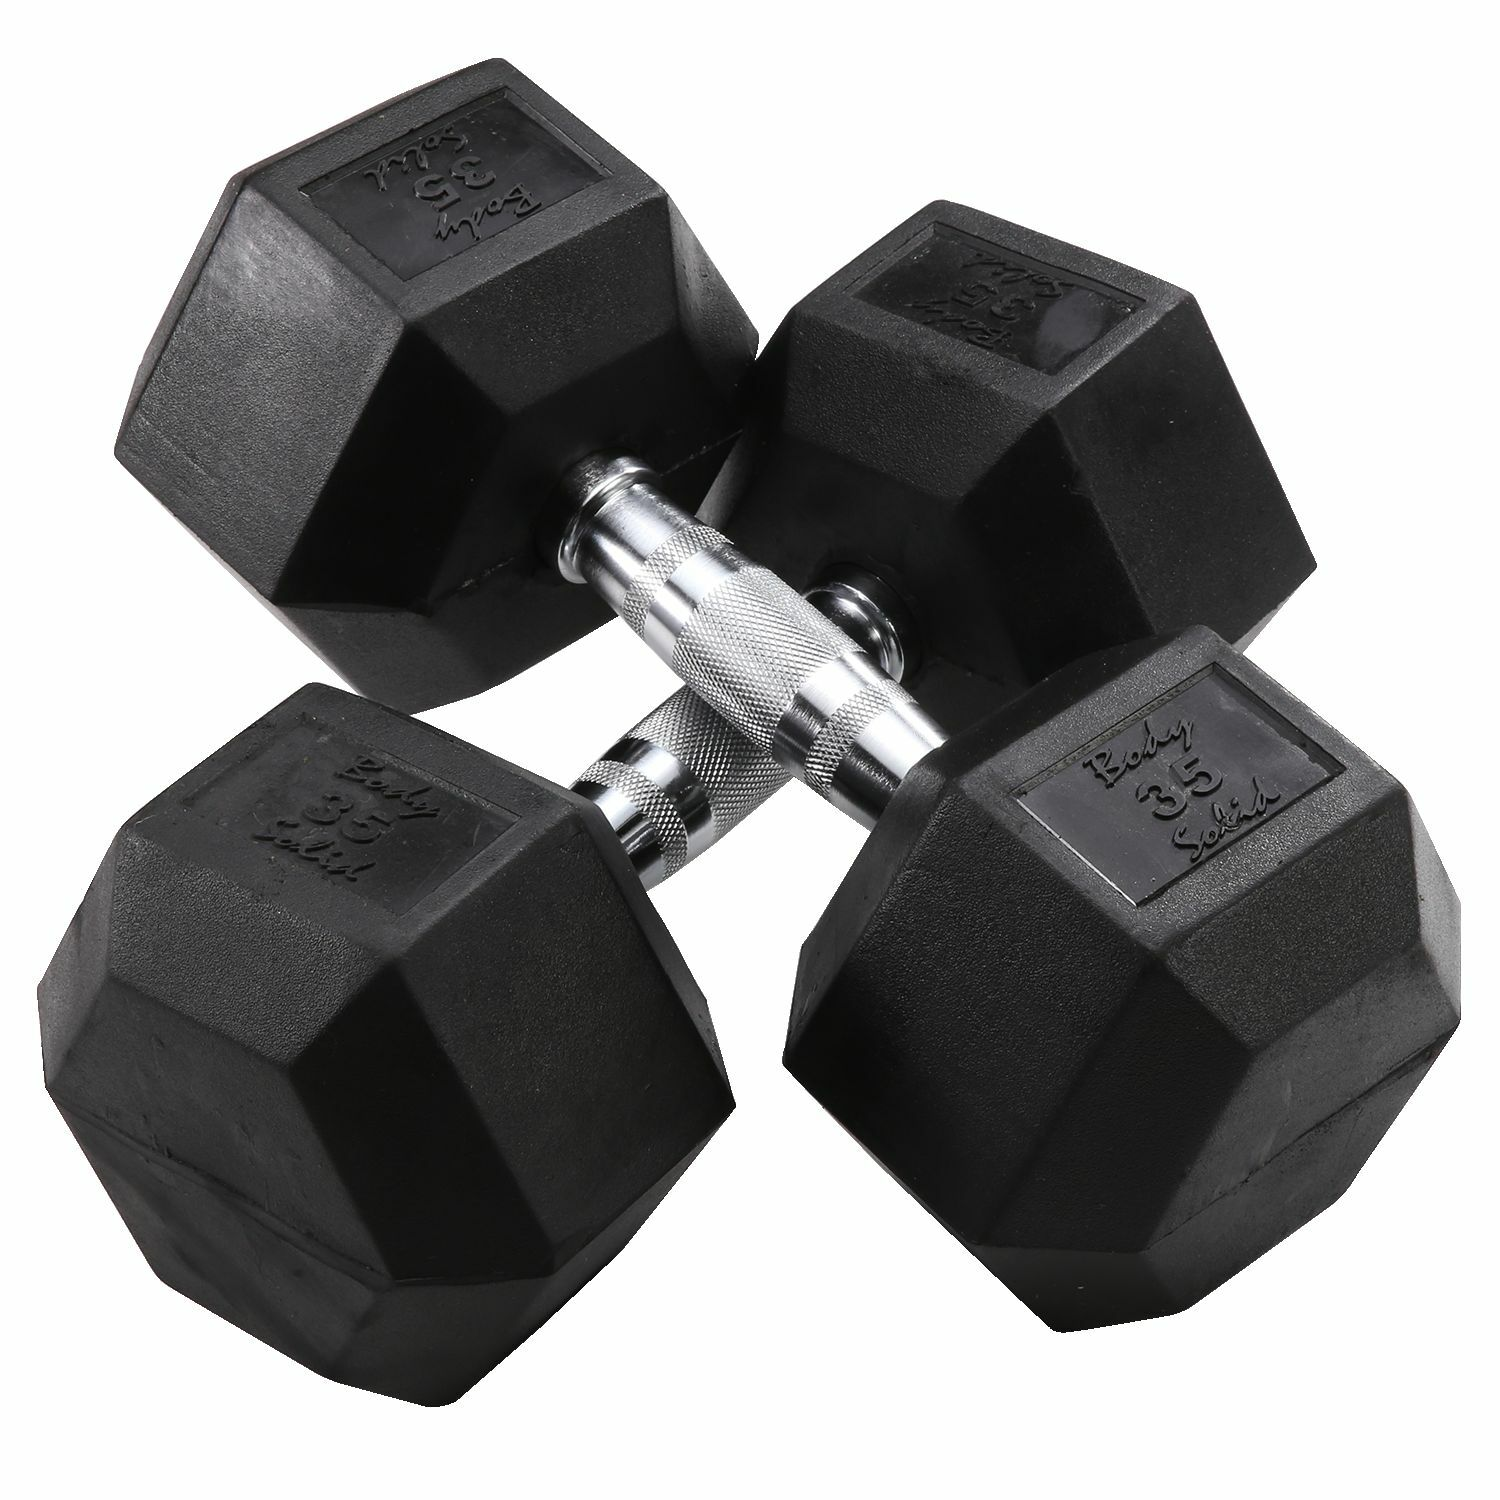 35 lb.  Rubber Coated Dumbbell Pair, Body-Solid SDR35  incentive promotionals